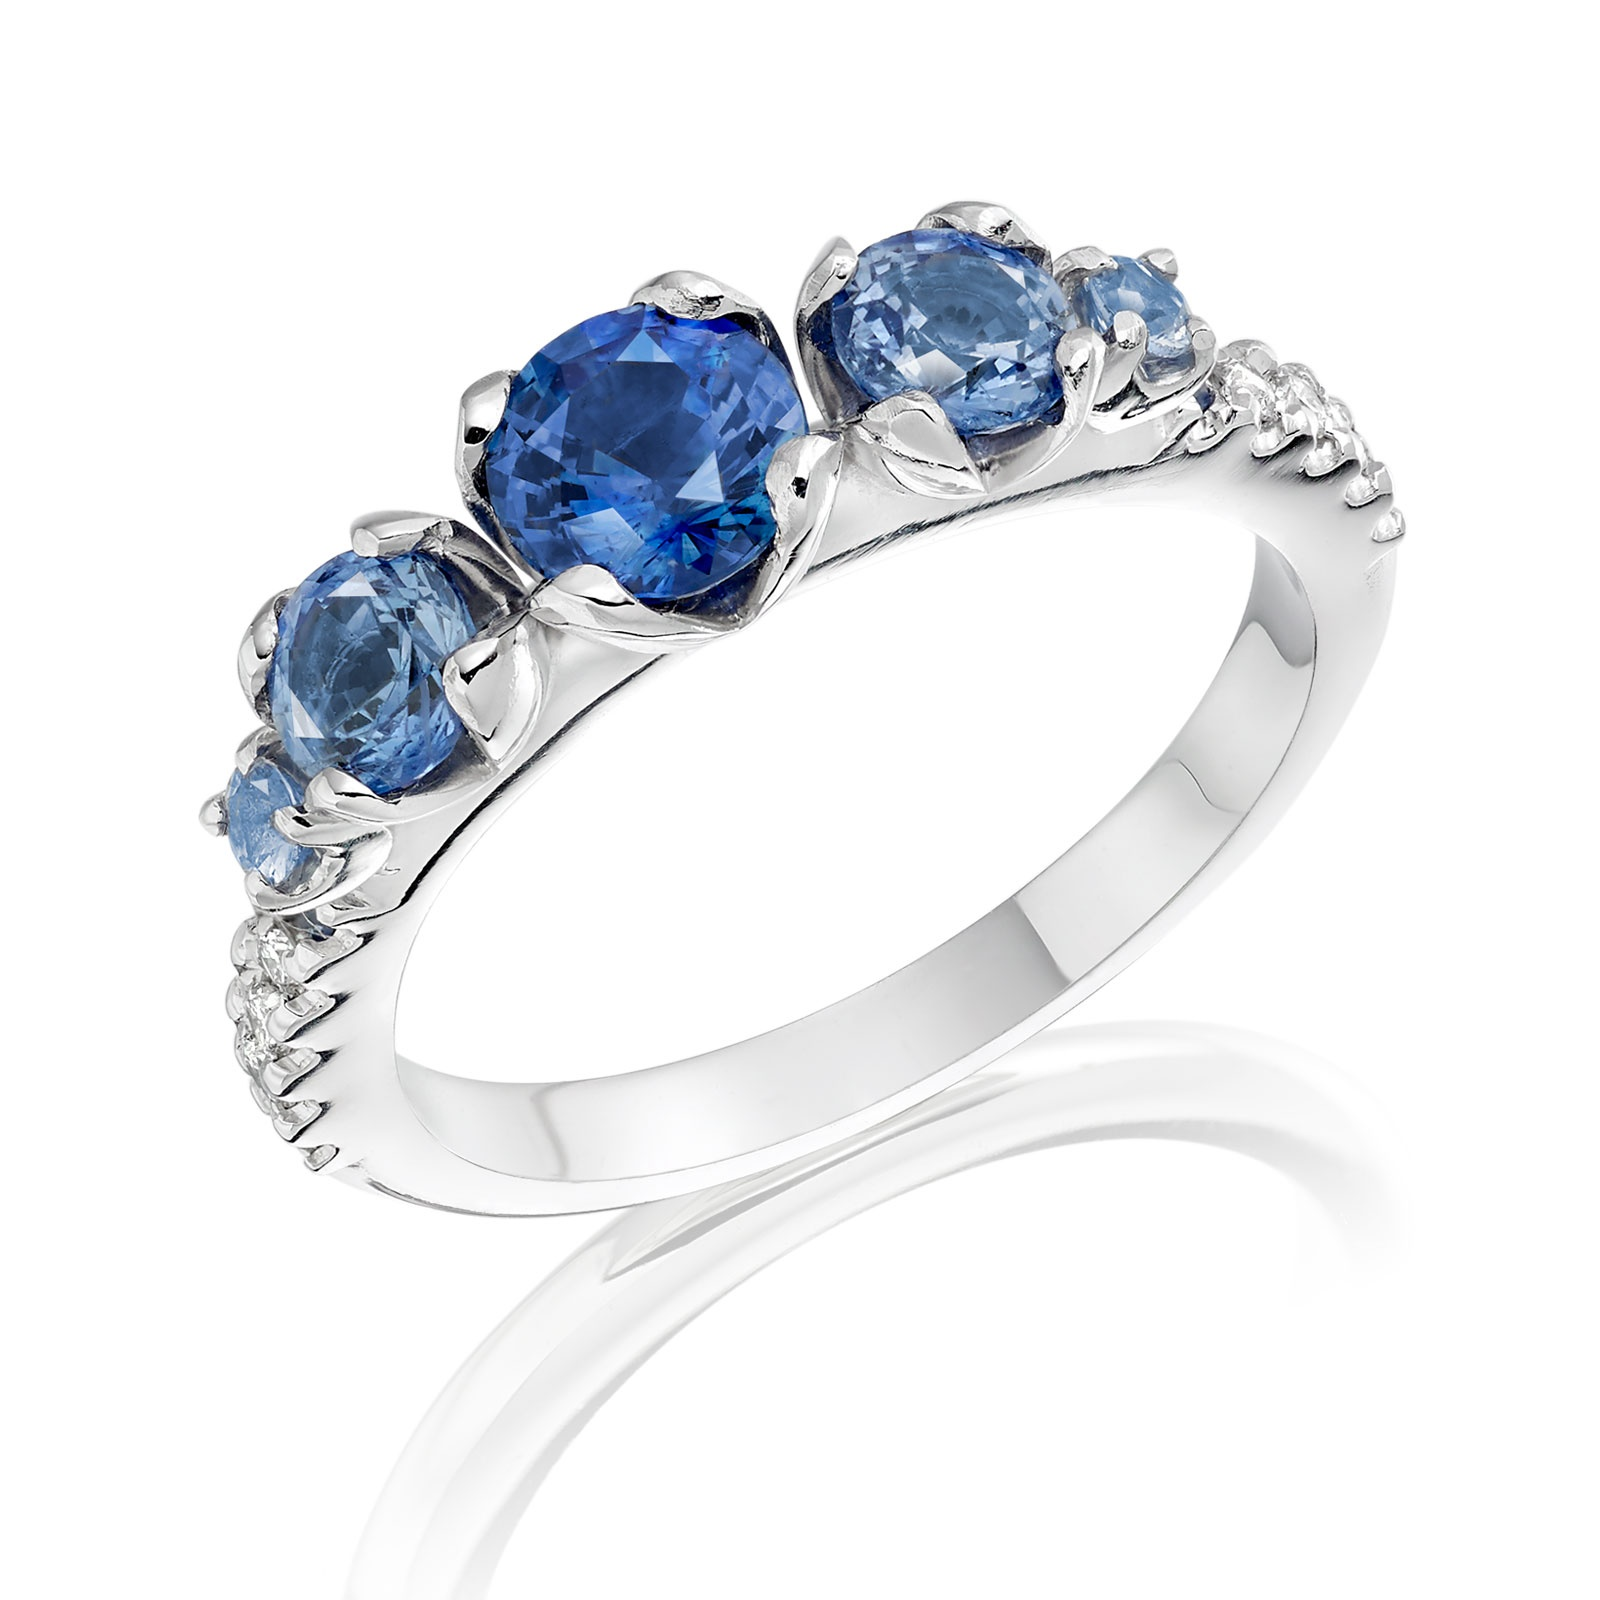 Lief Blue Sapphire and Diamond Ring in White Gold